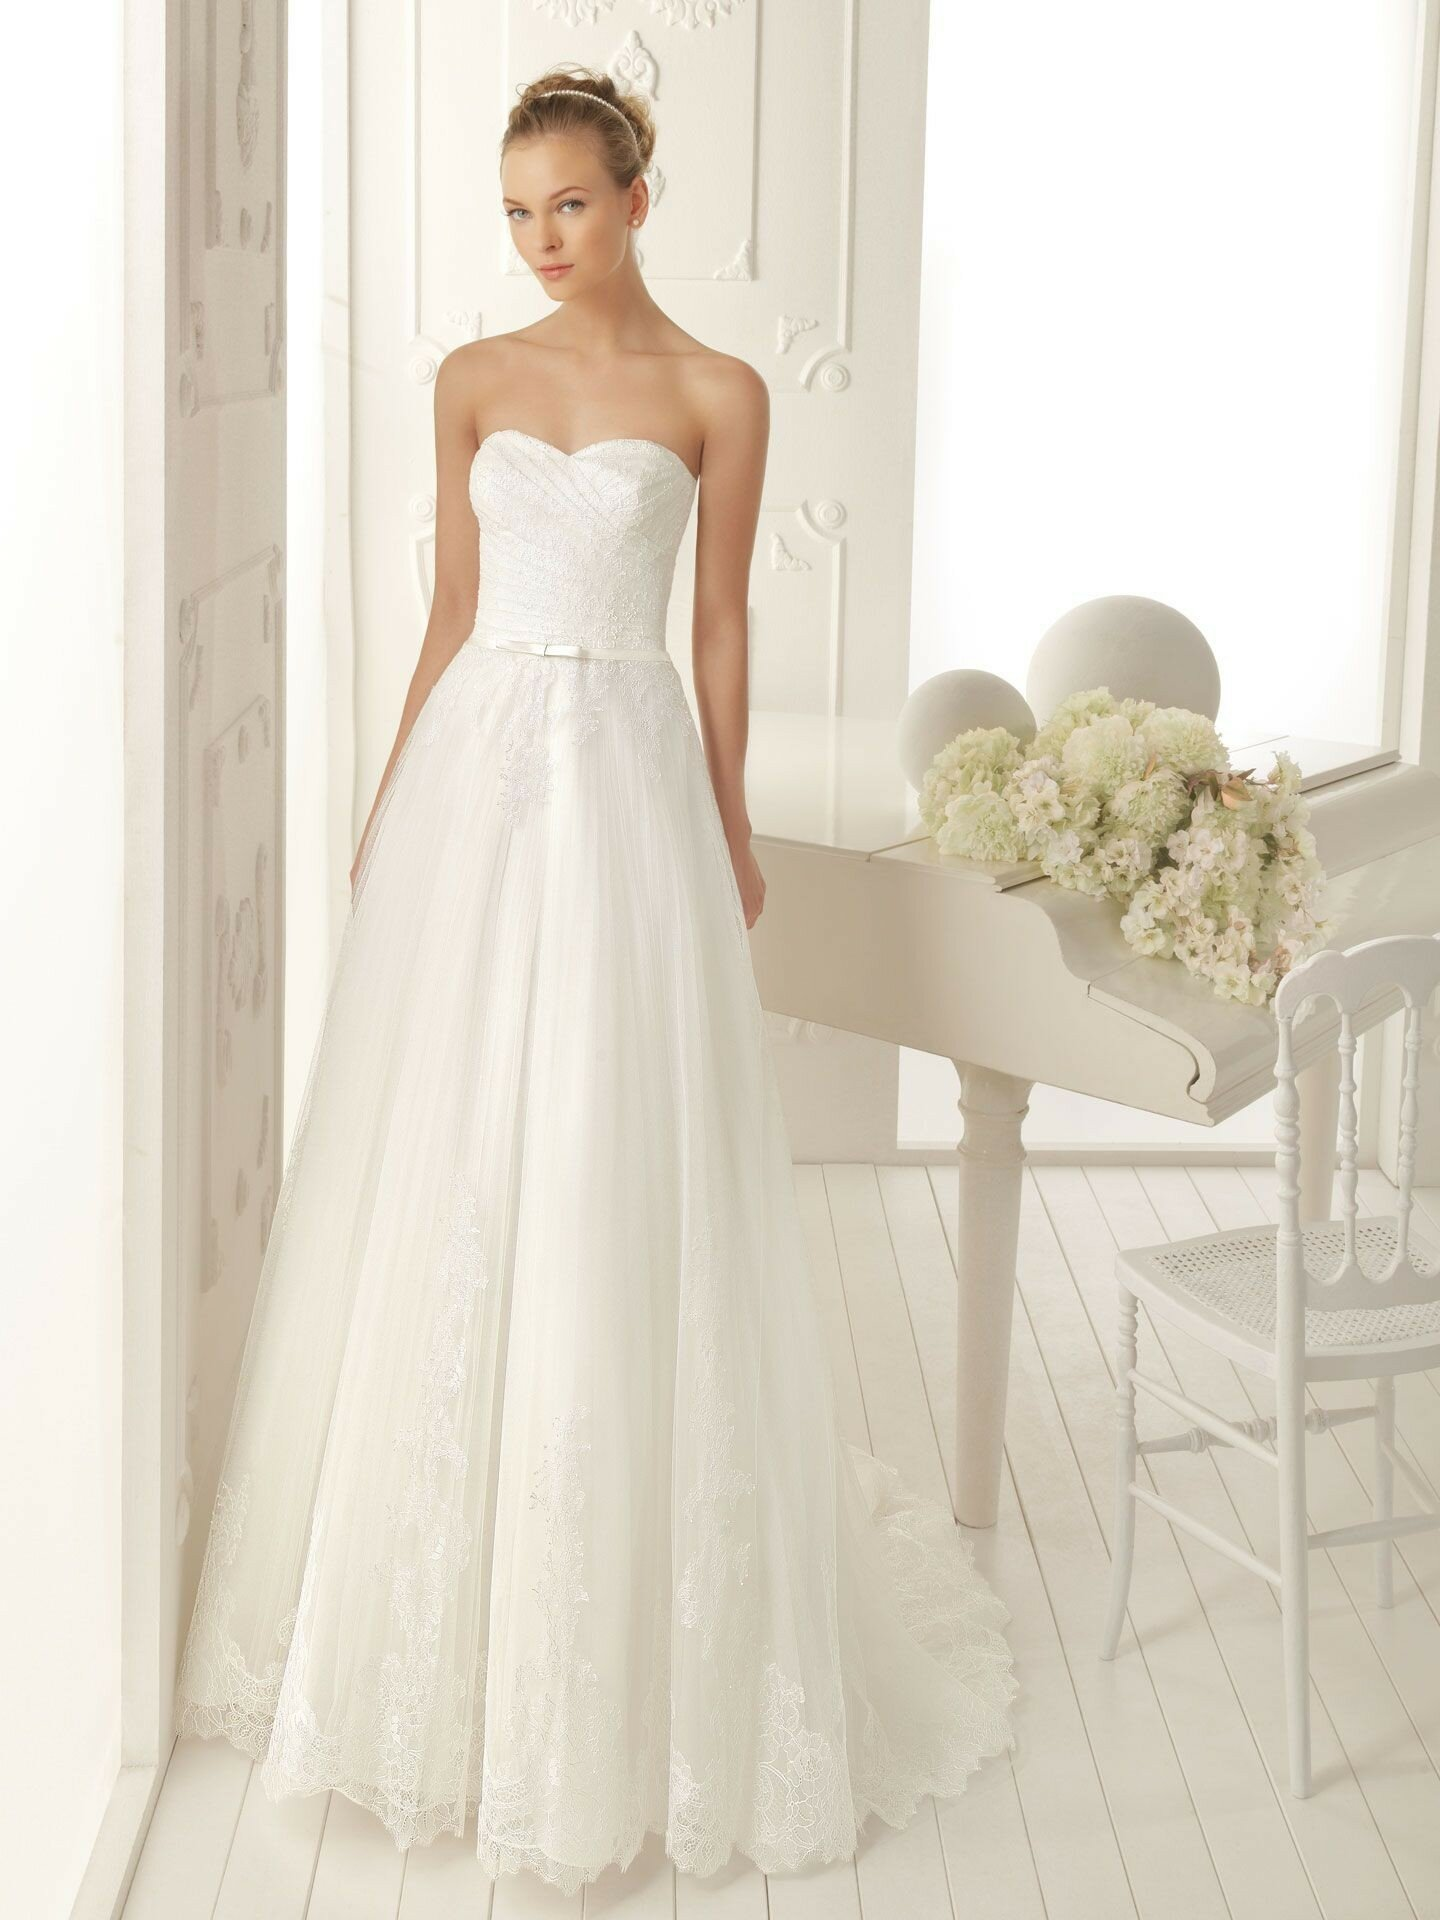 A line style wedding dresses Photo - 4